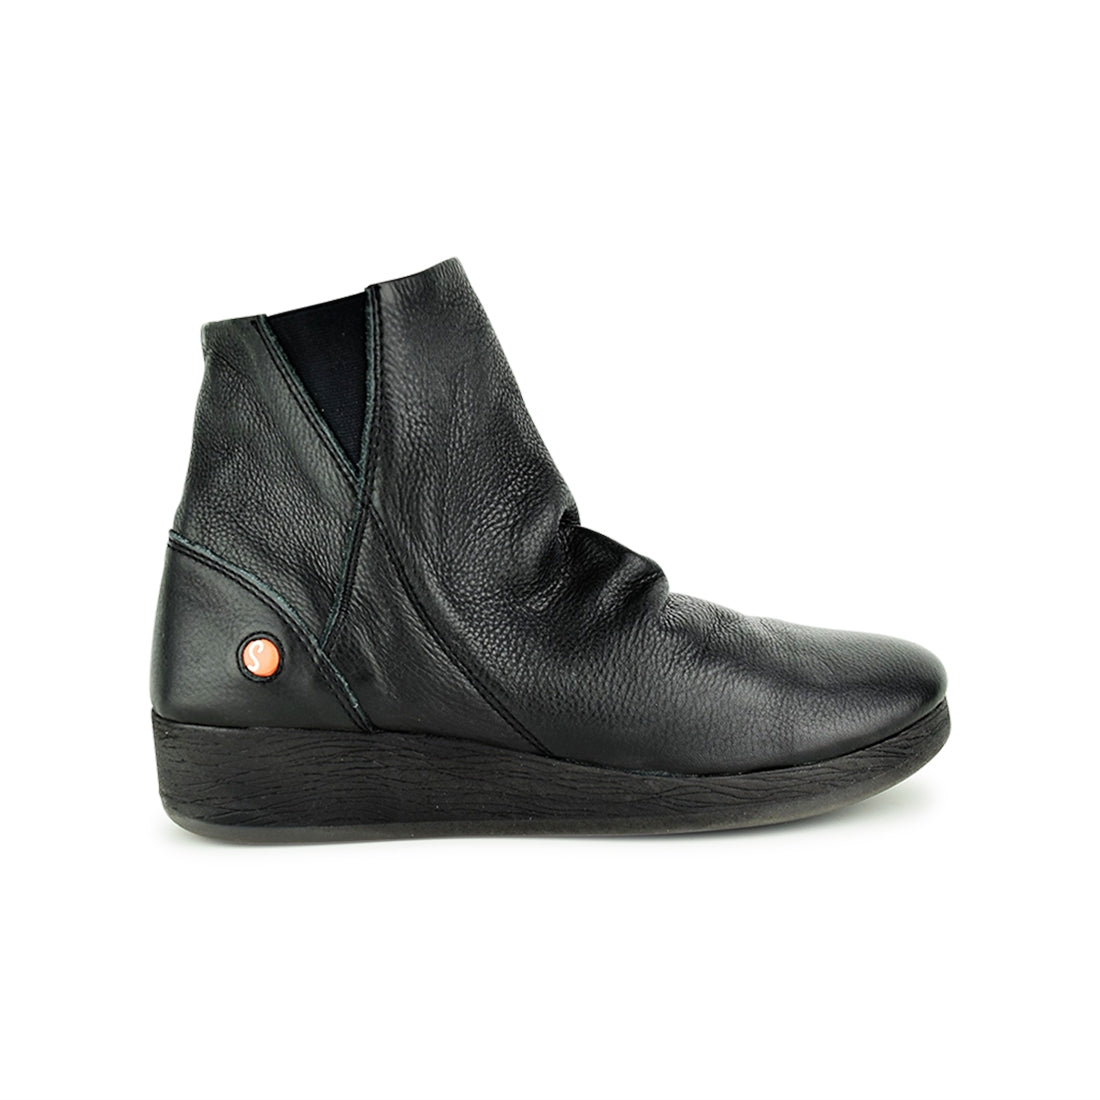 RAMIRA - Softinos Ankle Boots Black